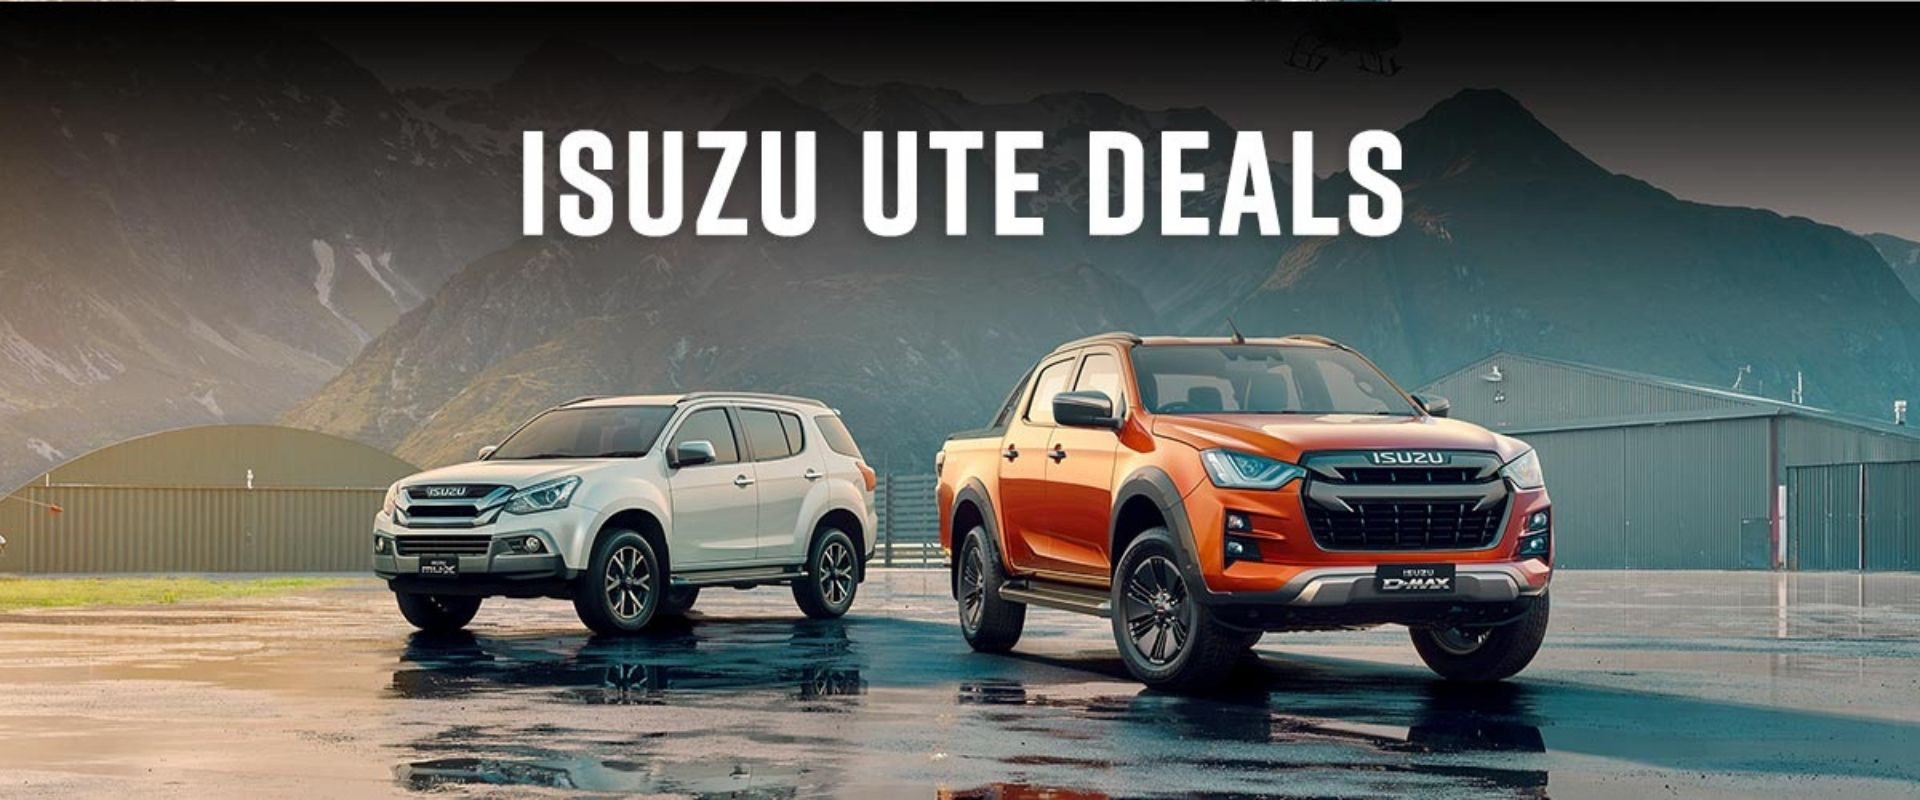 See our latest Isuzu UTE Offers and Specials